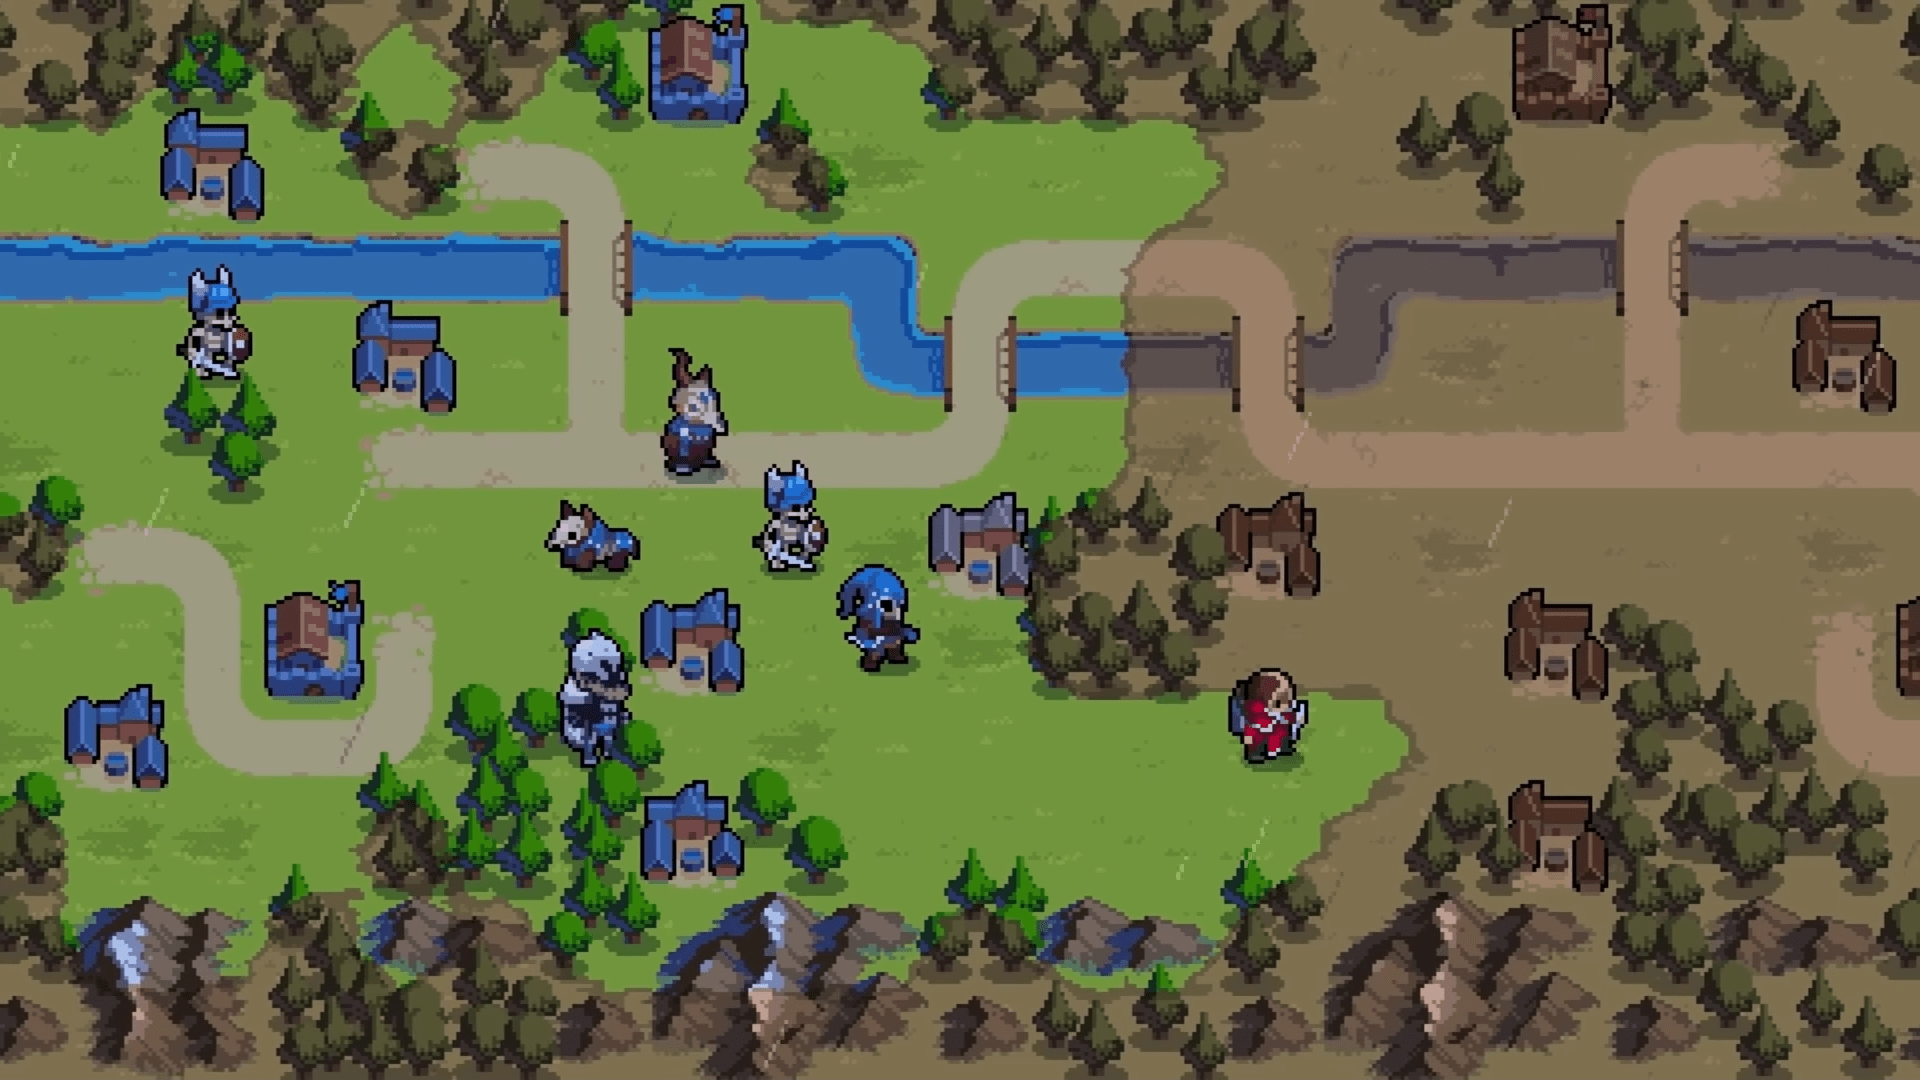 Wargroove: Double Trouble Is A Free DLC Announced To Arrive On February 6th